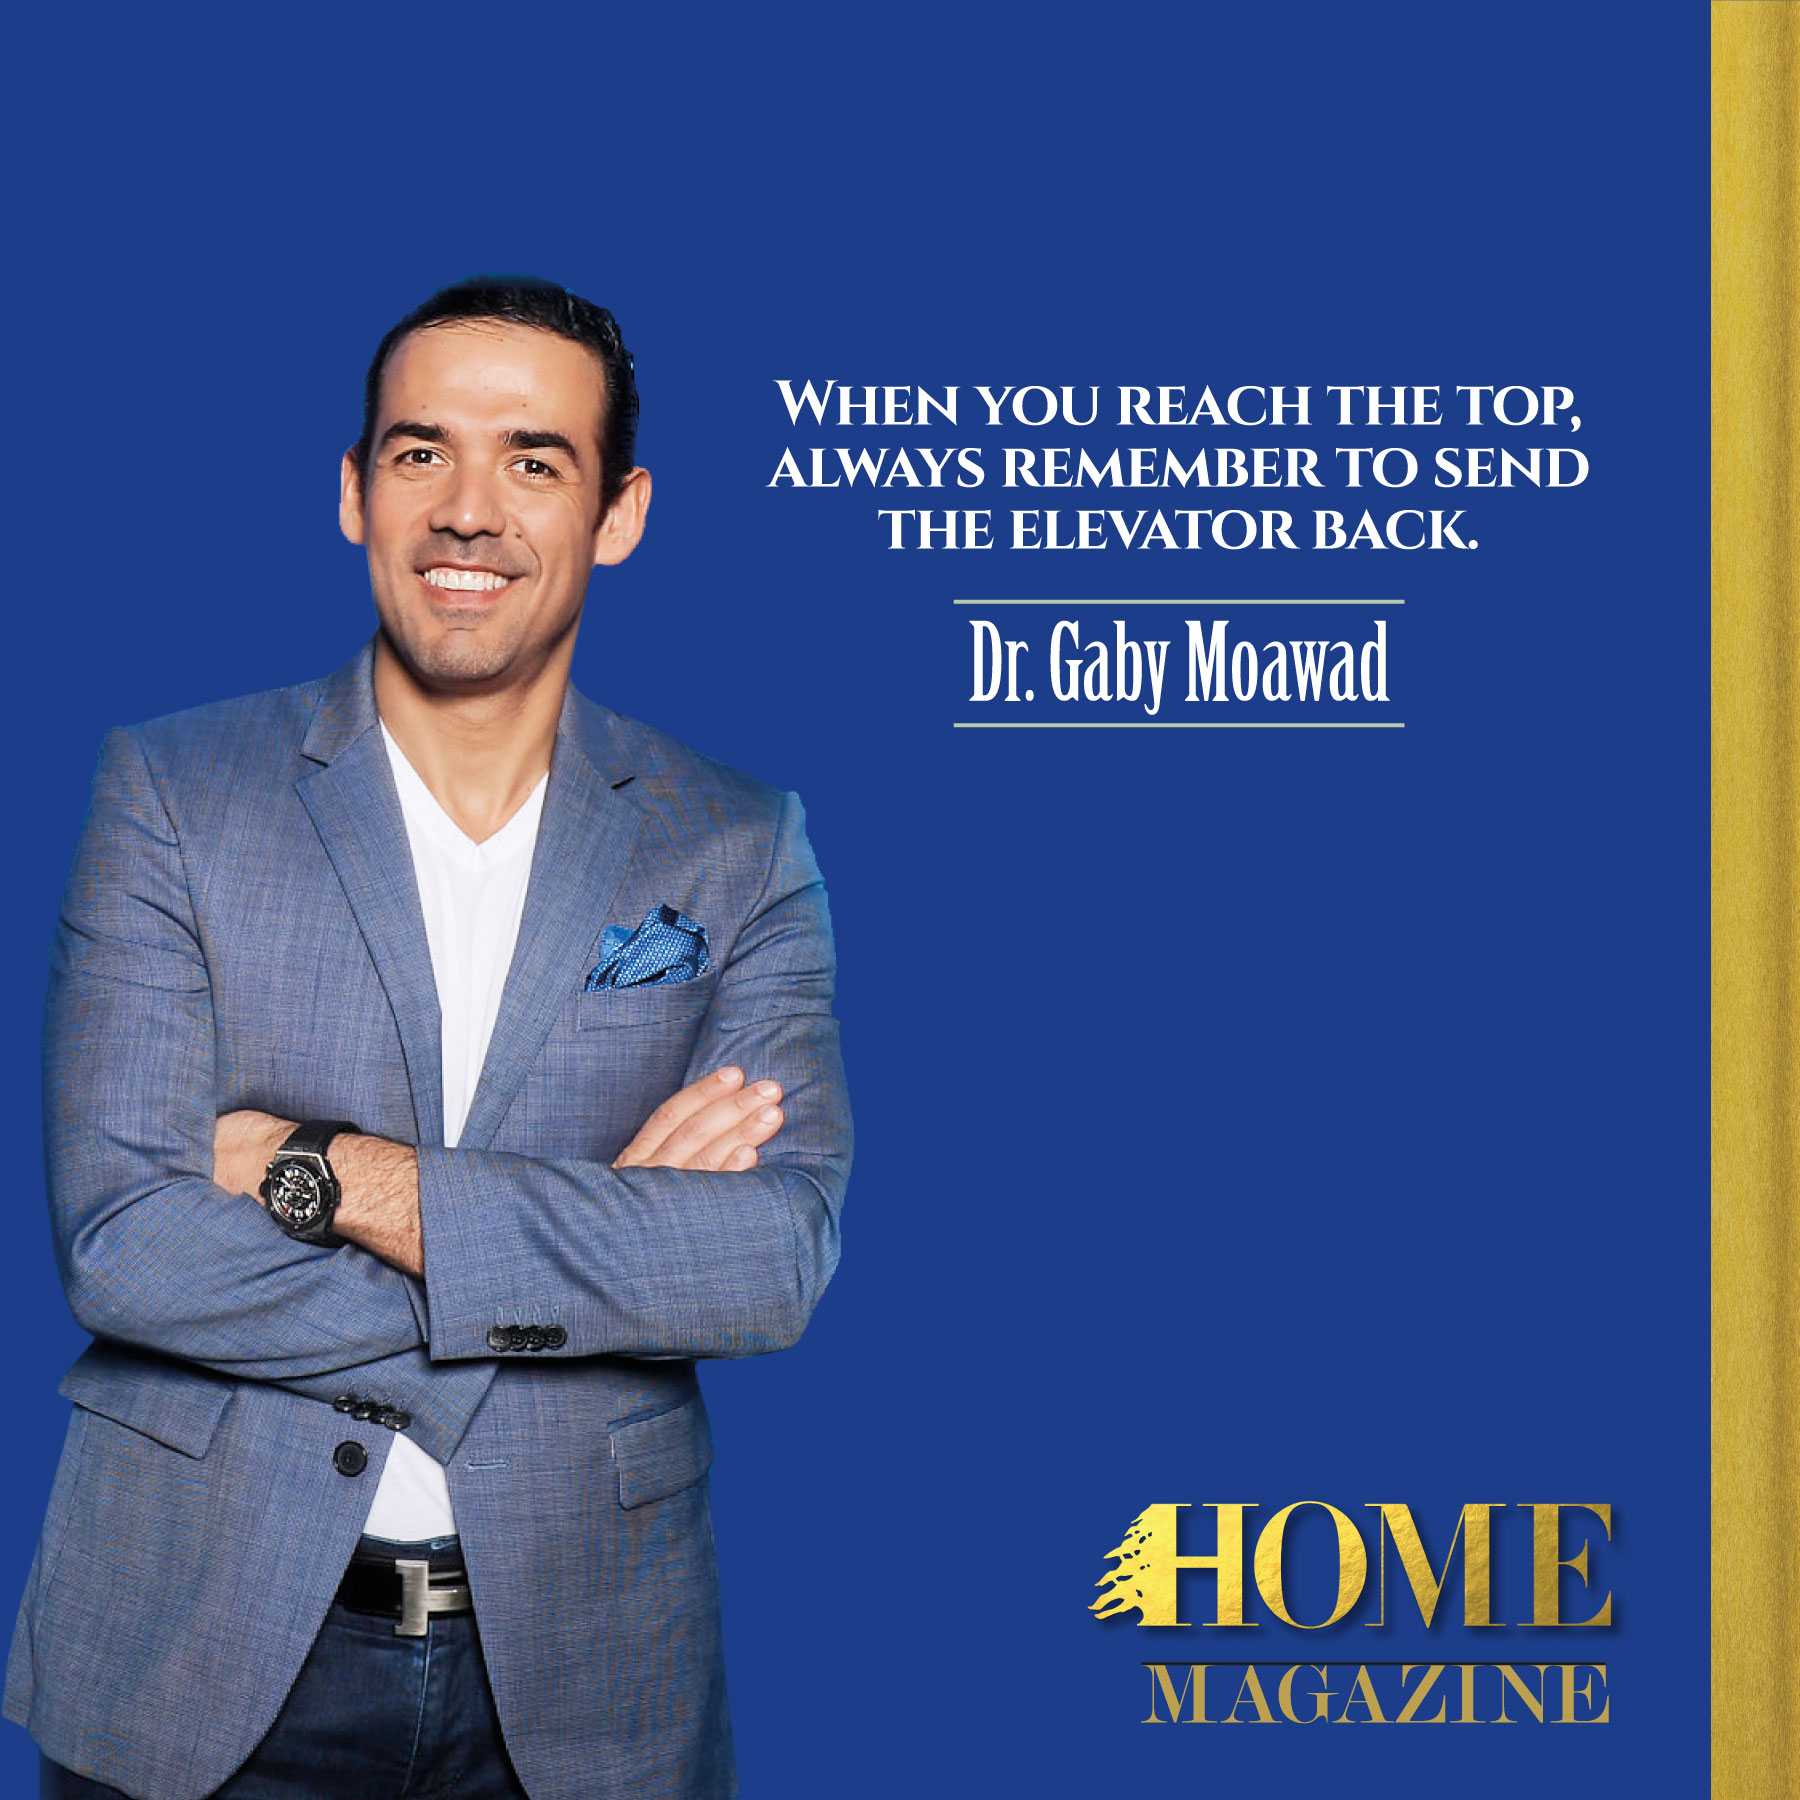 Walking with Dr. Gaby Moawad through his journey to Washington